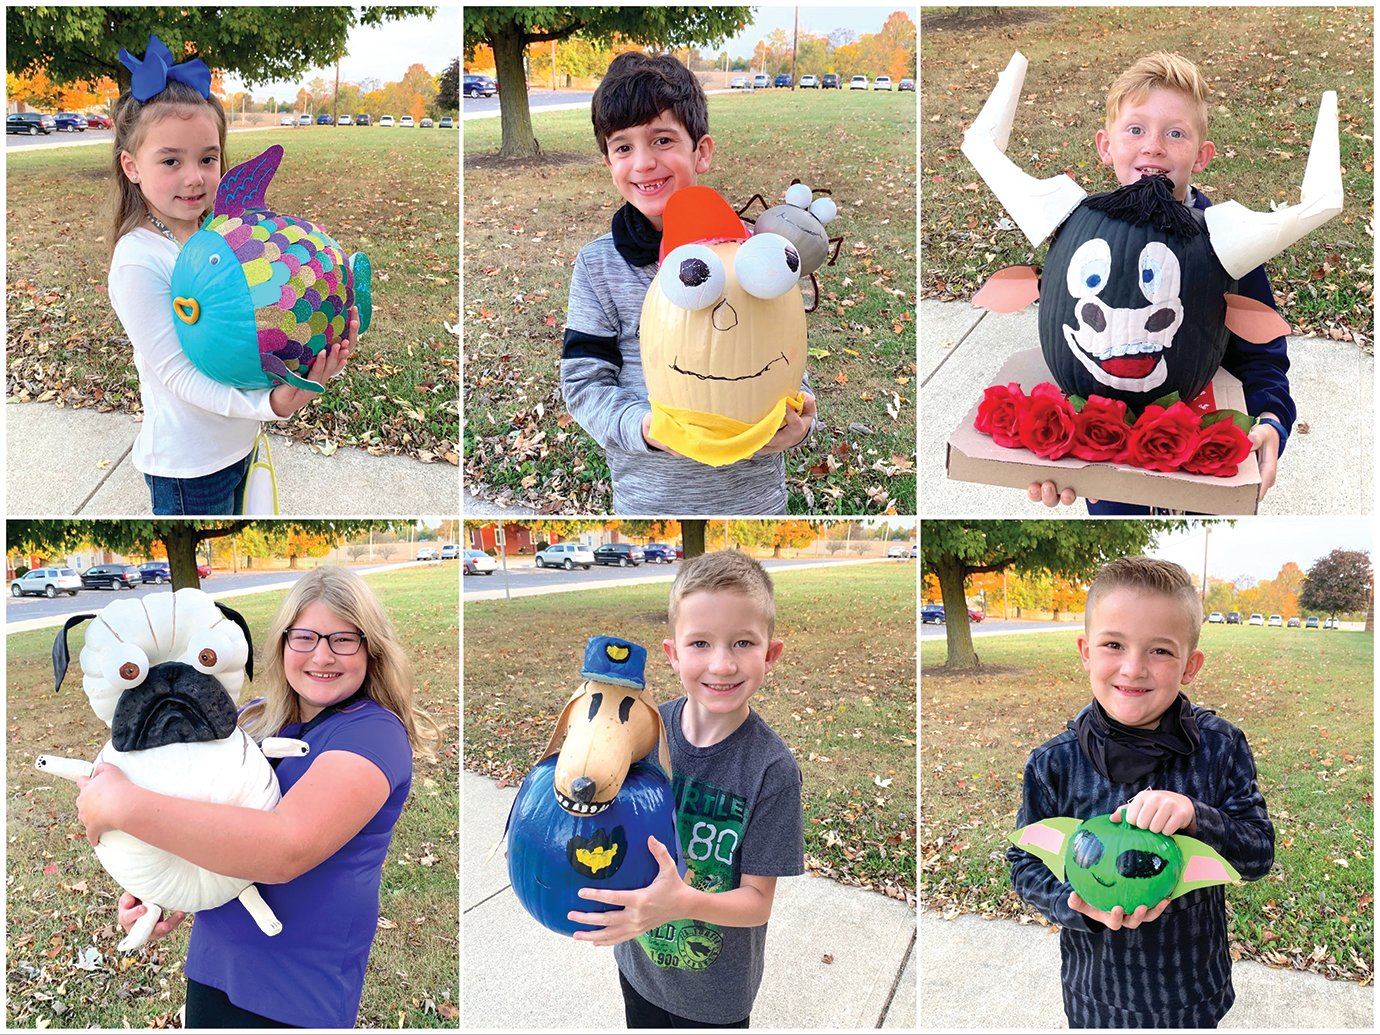 Winners of New Market Elementary's fall pumpkin painting contest proudly display their creative works of art Wednesday in front of the school. More than 150 pumpkins were submitted for the contest.  Champions were voted upon by their peers in each grade level. Winners, clockwise from top left, include: Kindergartener Kynlee Cleary with her fish; first grader McCoy Gomez with Fly Guy and Buzz; second grader Harrison Simmons with Ferdinand; third grader Hudson Beach with Yoda; fourth grader Colton Kendricks with Dog Man; and fifth grader Molly Slavens with Pig the Pug.